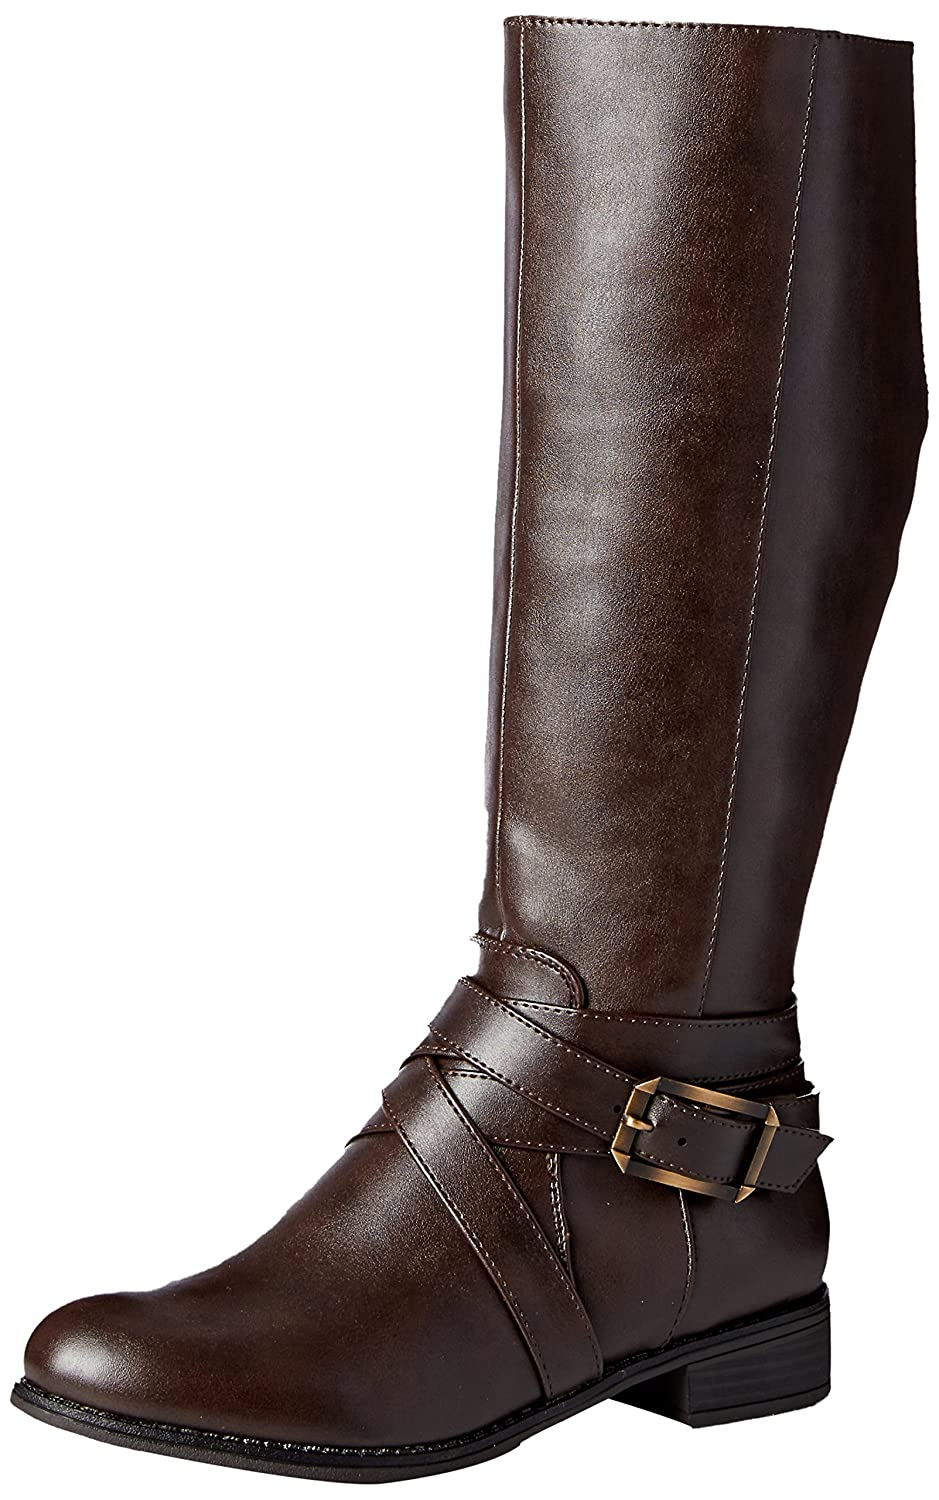 LifeStride Women's Subtle Equestrian Boot B01M0IRSQF 6 W US|Dark Brown